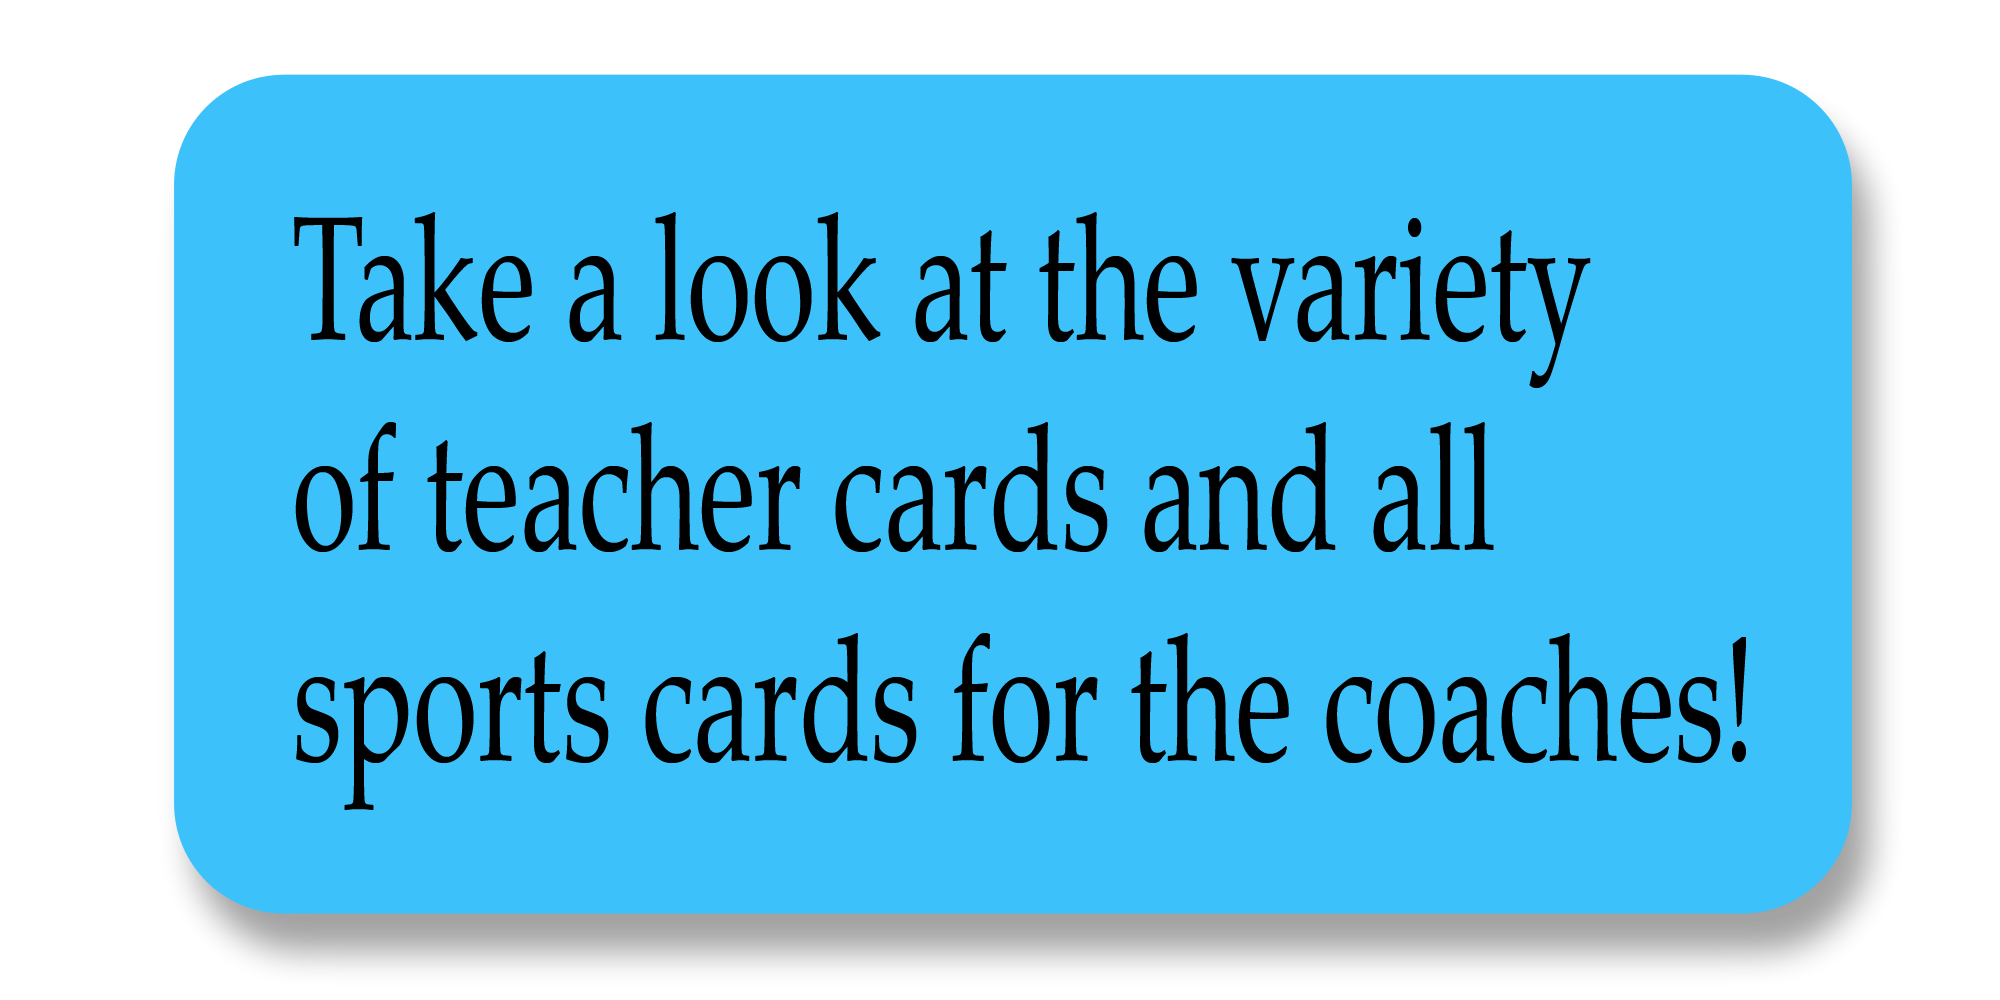 Card for Coaches